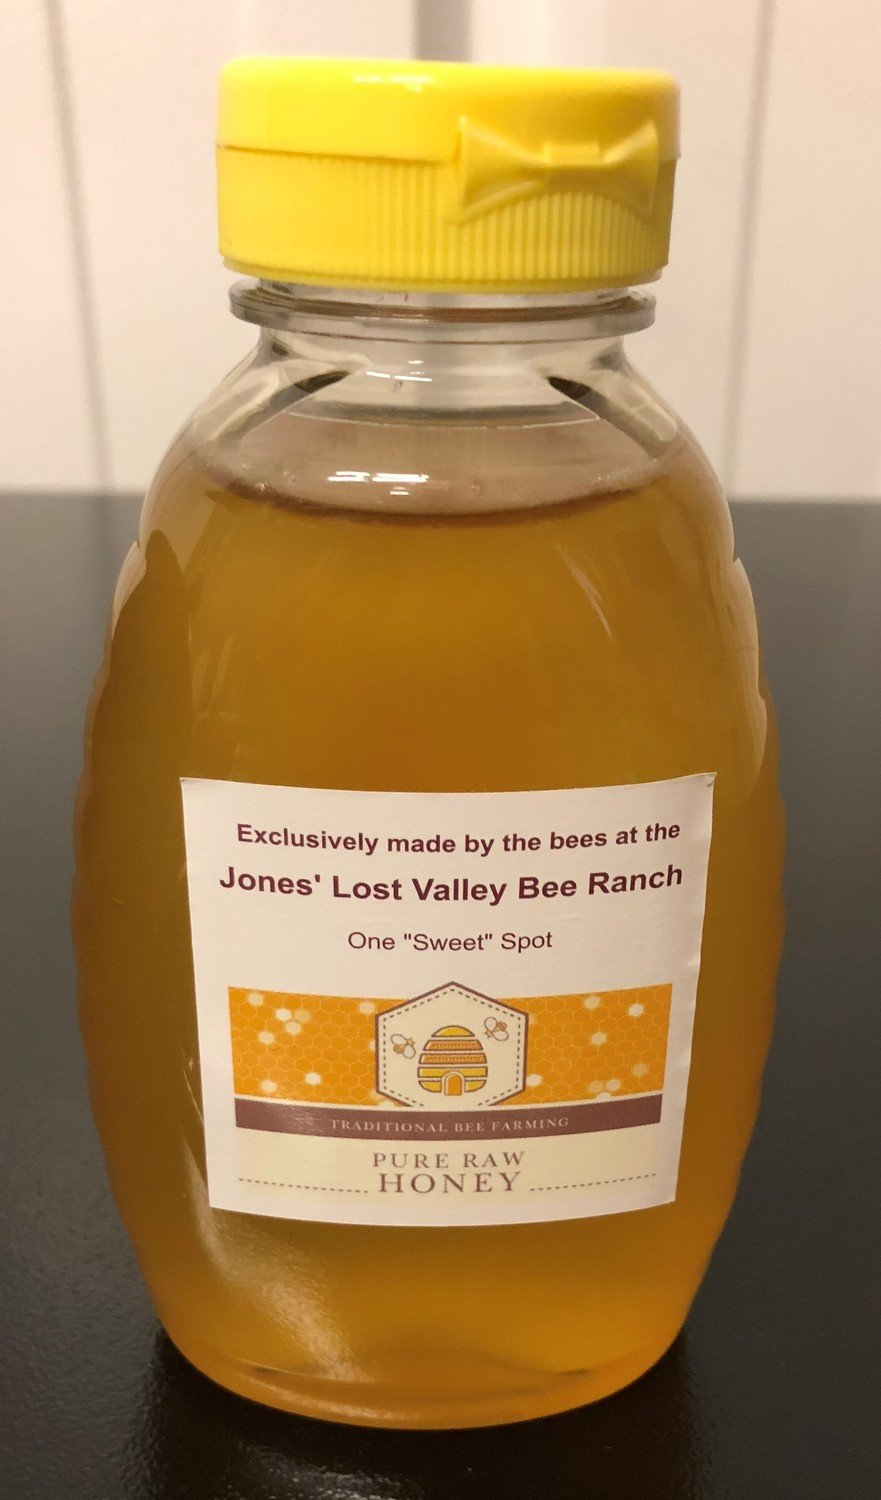 Jones' Lost Valley Bee Ranch Honey